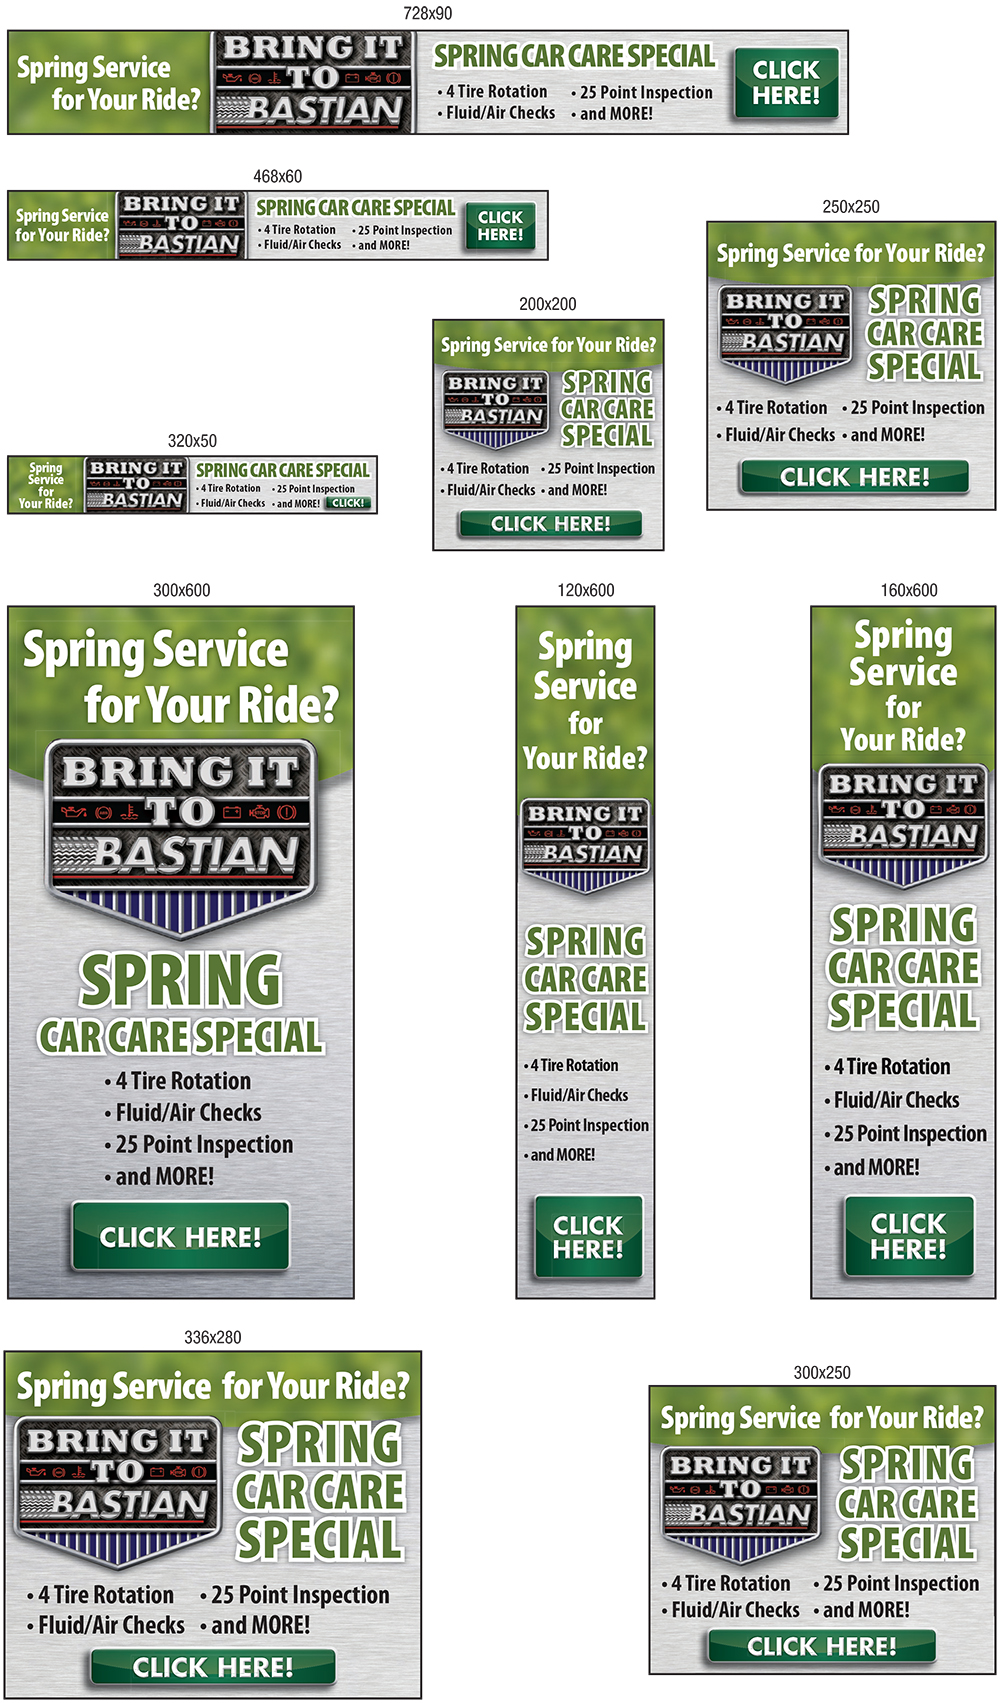 Google Adwords Display Ads for Bastian Tire and Auto Center